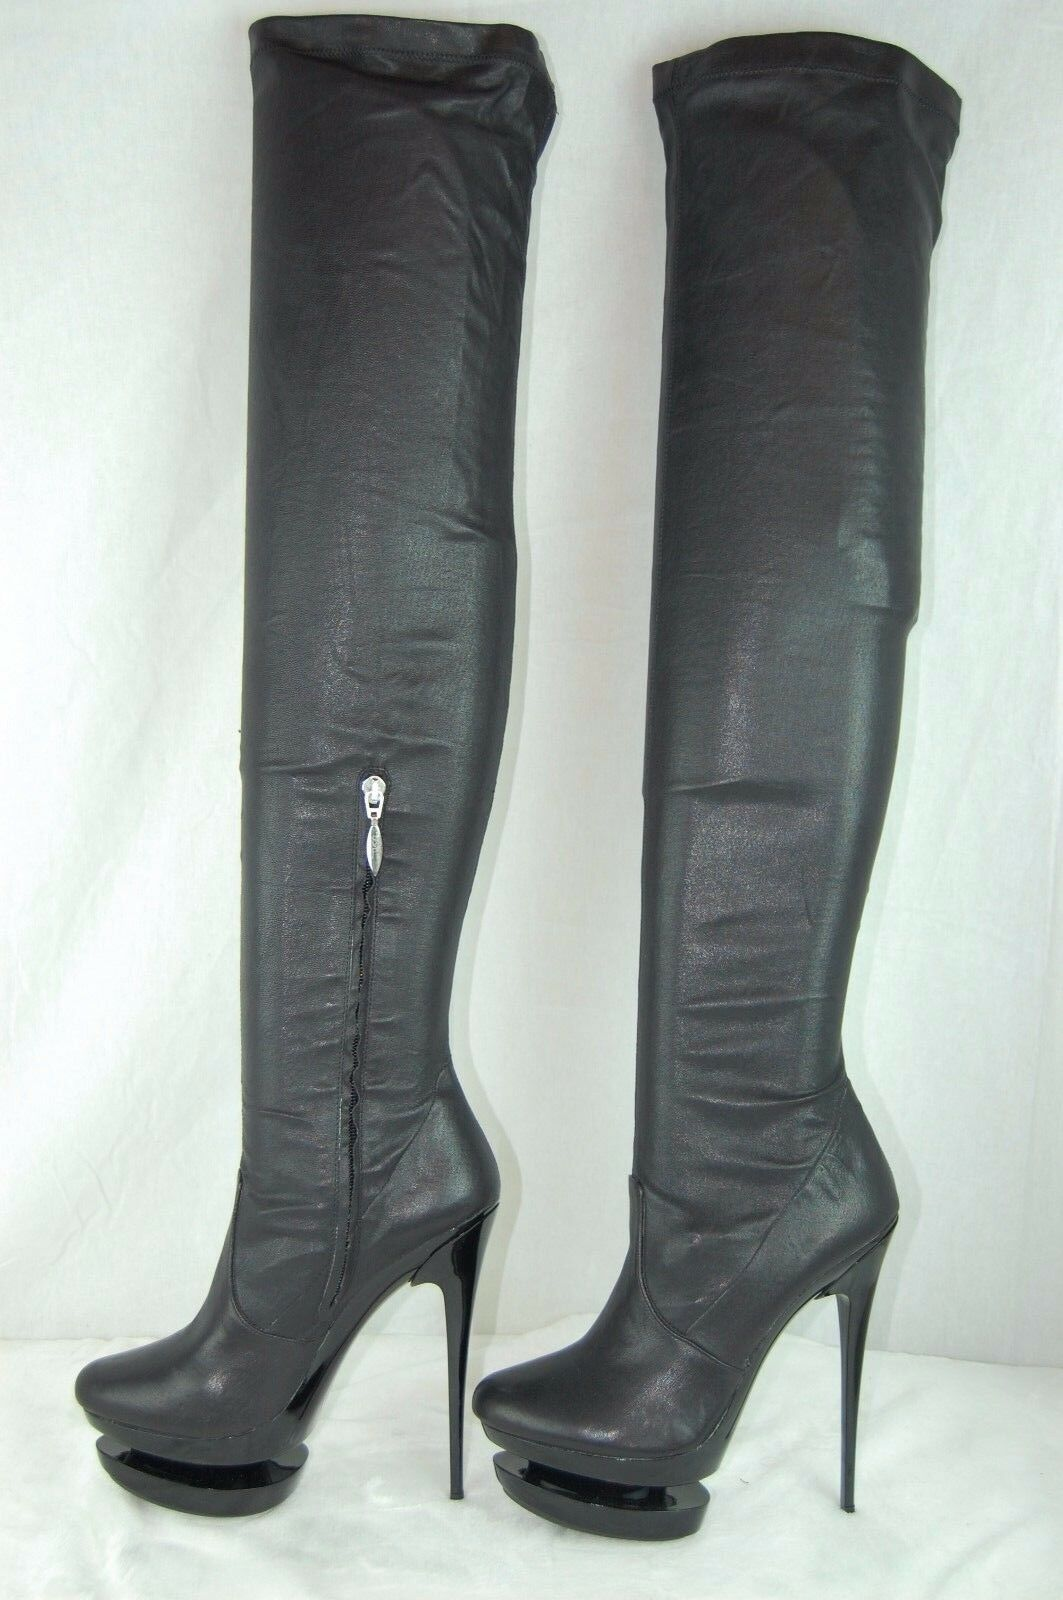 MIPIACI MADE IN ITALY schwarz  LEATHER STRETCH OVER THE KNEE Stiefel  EU 37 US 6.5